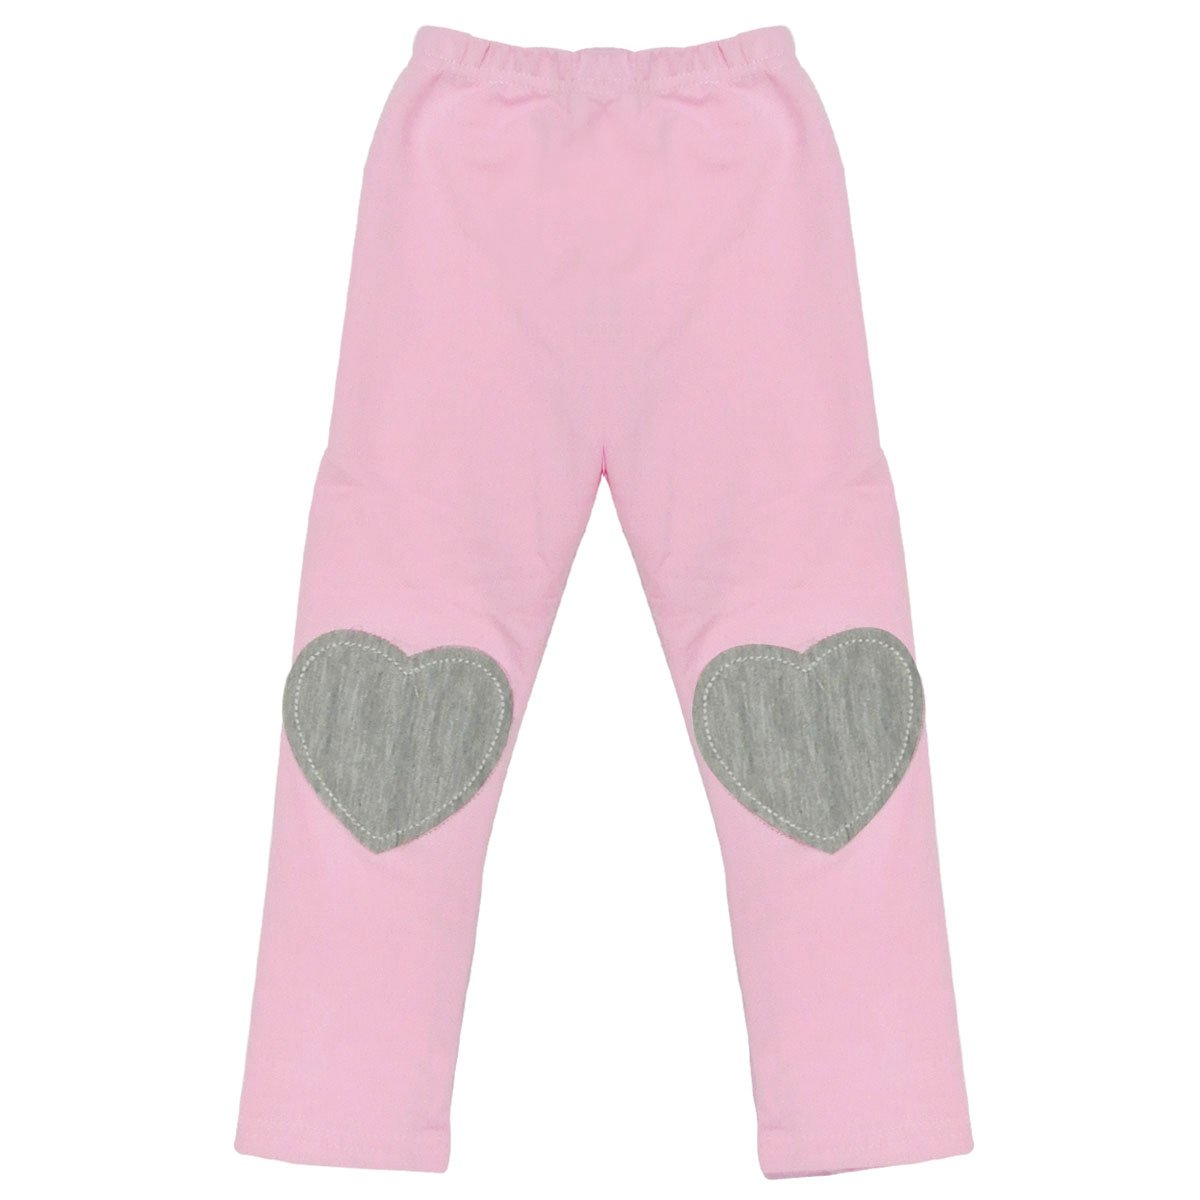 Wrapables Adorable Hearts Toddler Leggings, Pink - 90cm